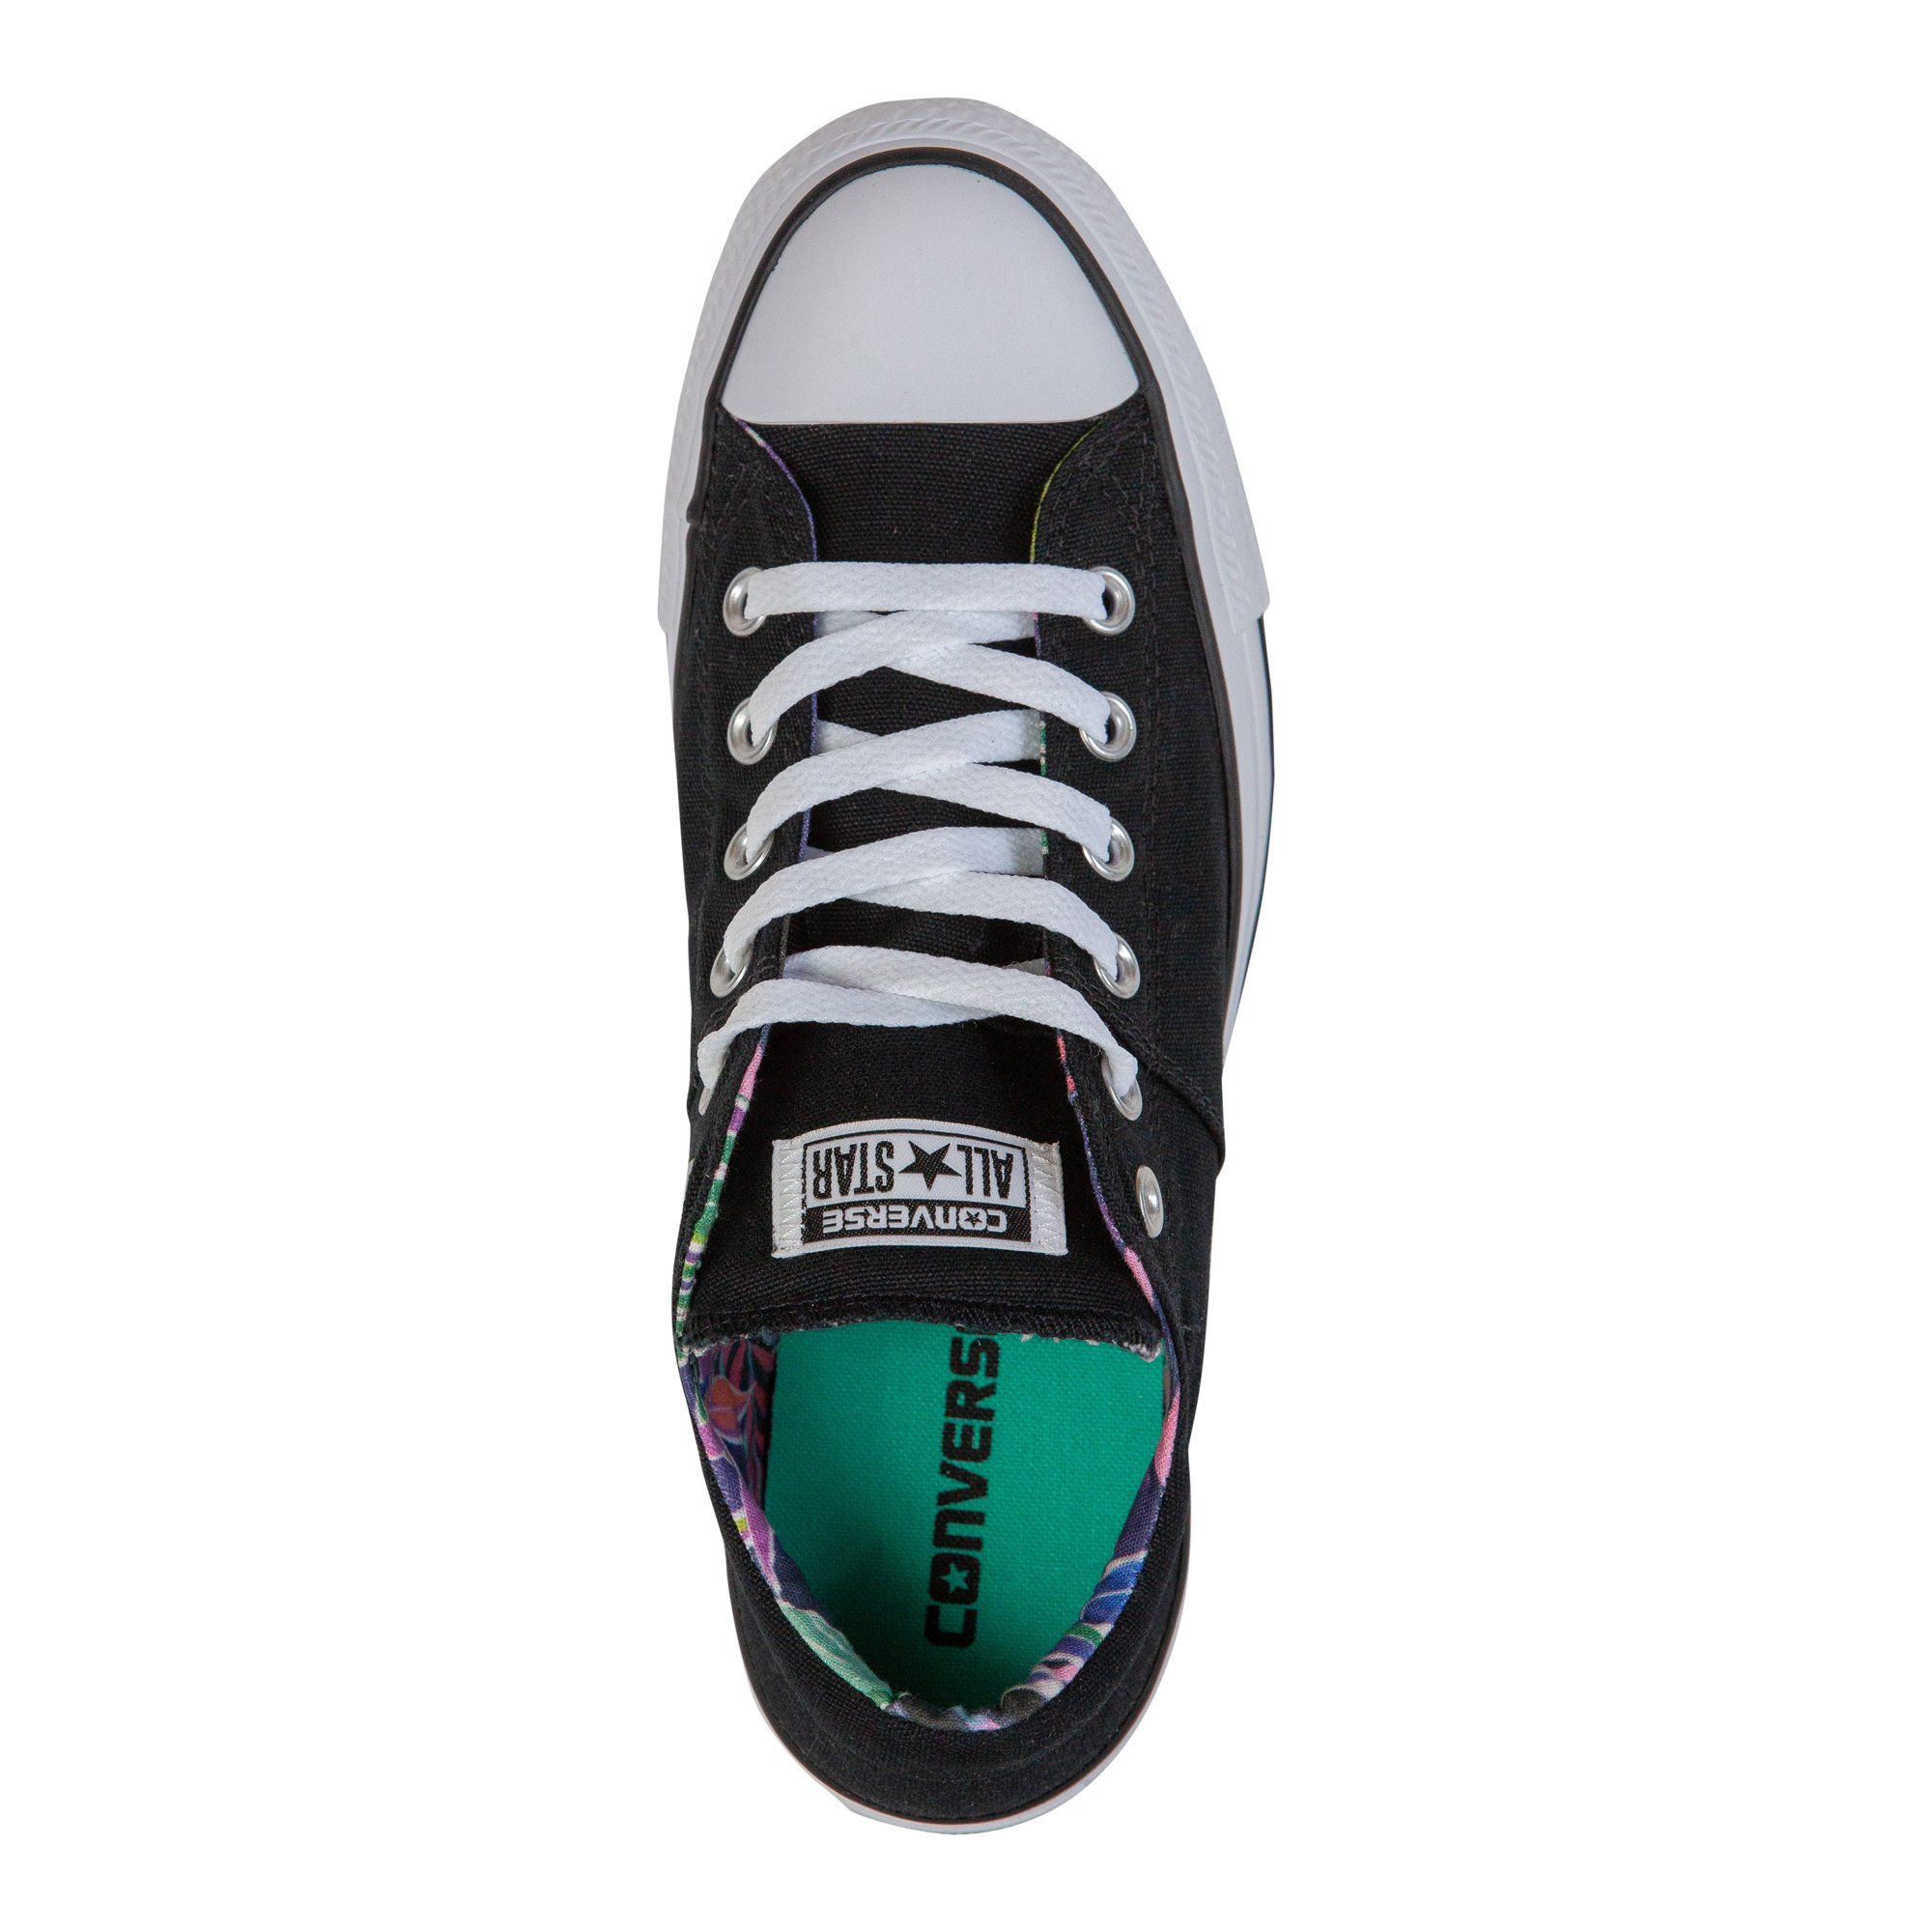 Converse Women's Chuck Taylor All Star Madison Sneakers, Black/White/White, 8 B(M) US by Converse (Image #5)